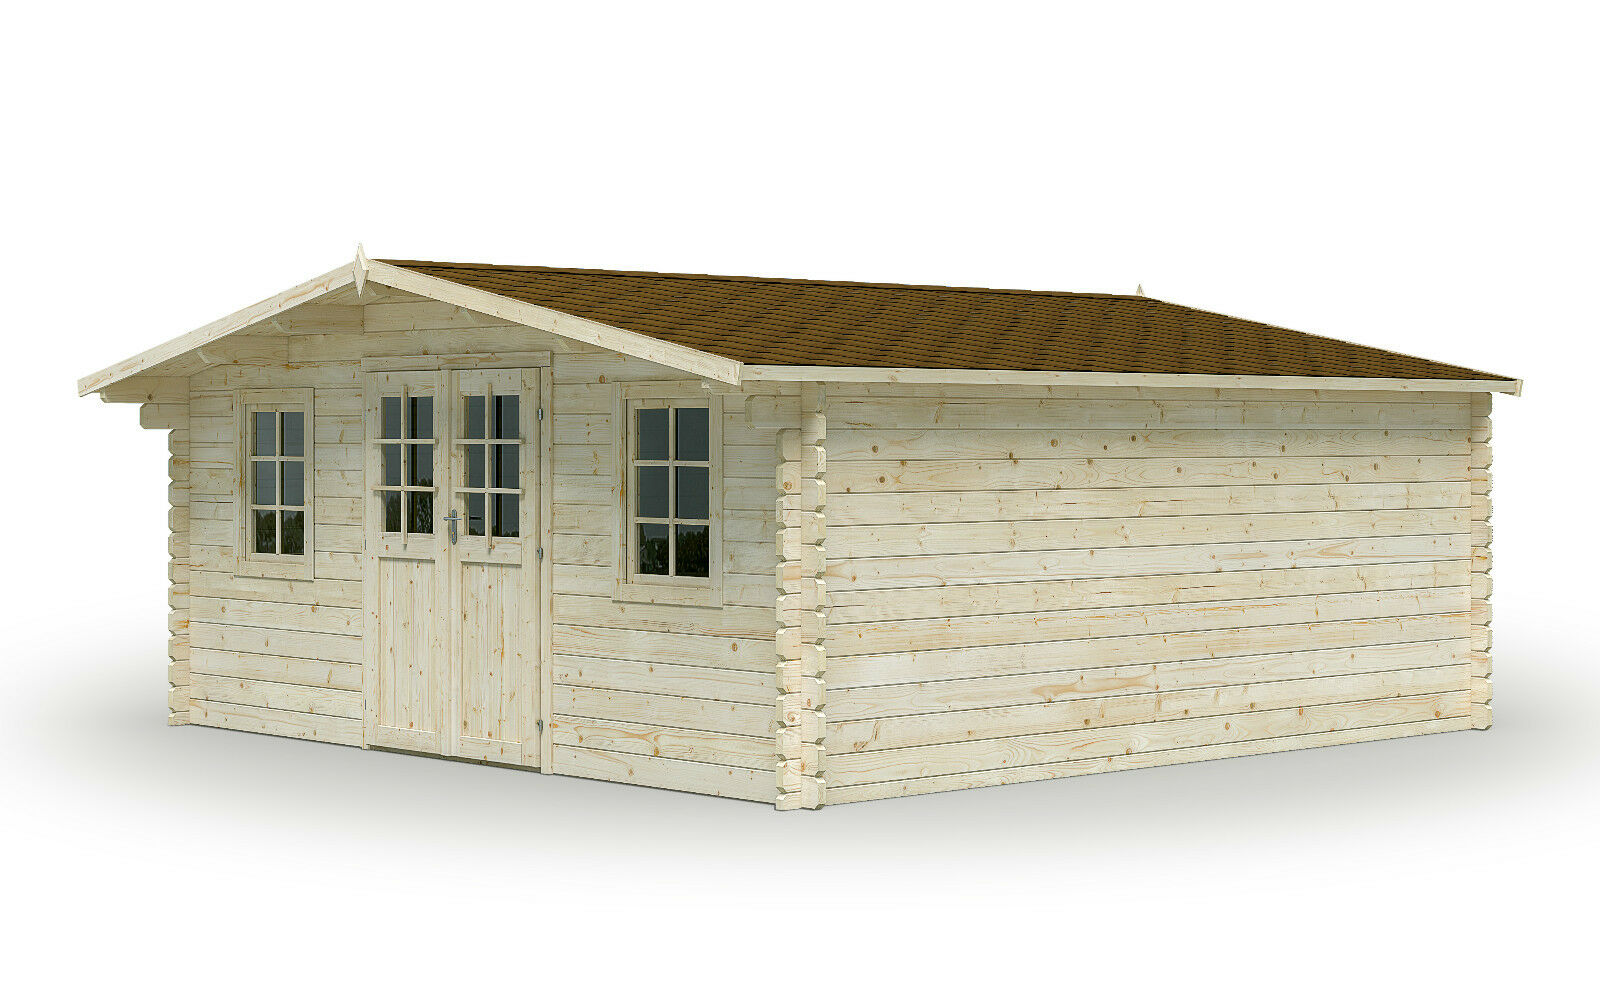 44 mm gartenhaus gera 500x500 cm ger tehaus schuppen holz holzhaus blockhaus ebay. Black Bedroom Furniture Sets. Home Design Ideas